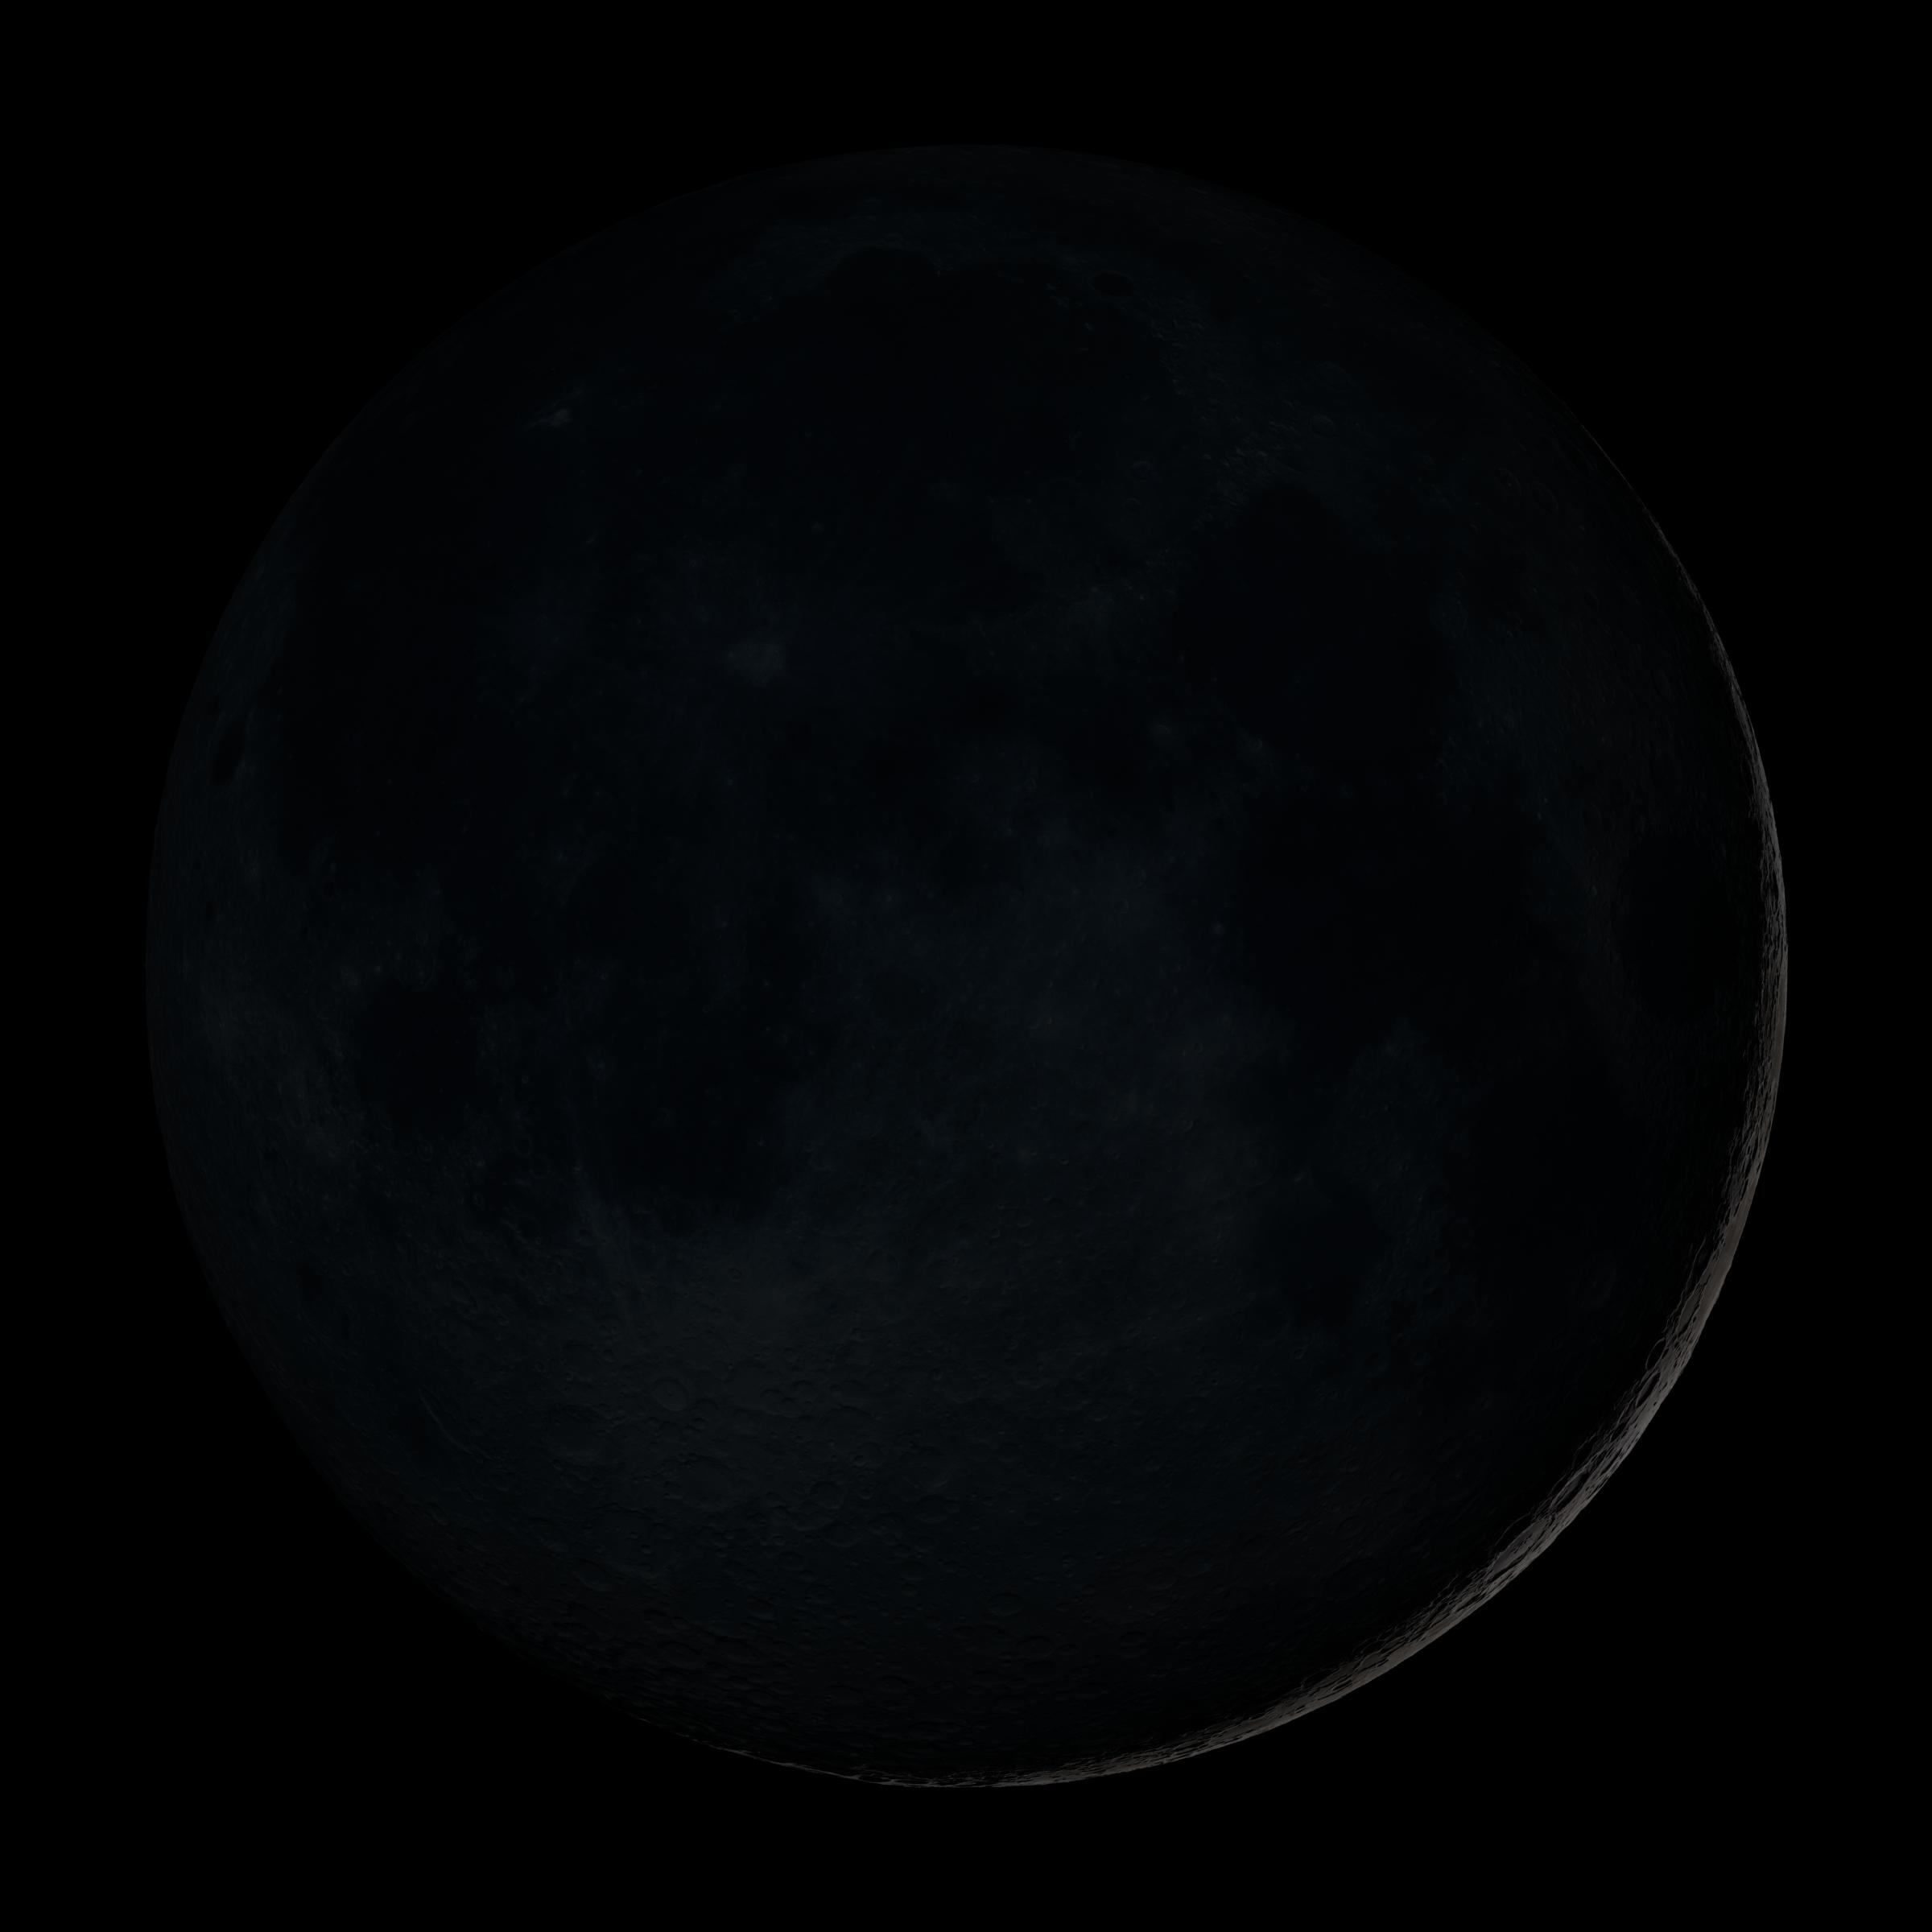 The dark moon, a sliver of outline visible, holding space for growth